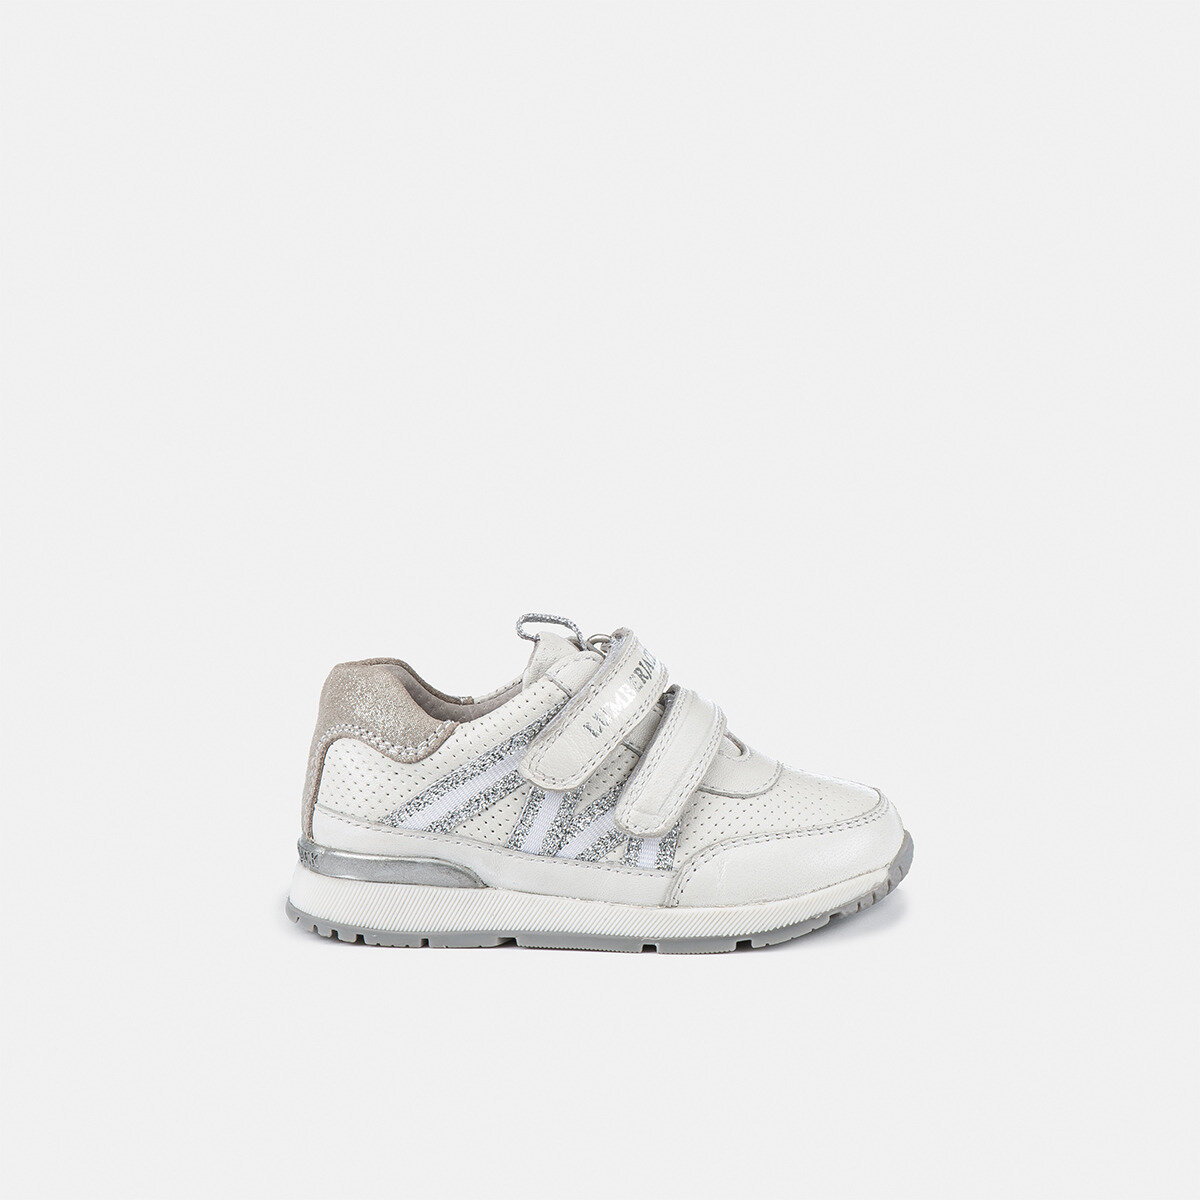 SQUISH WHITE/SILVER Girl Sneakers